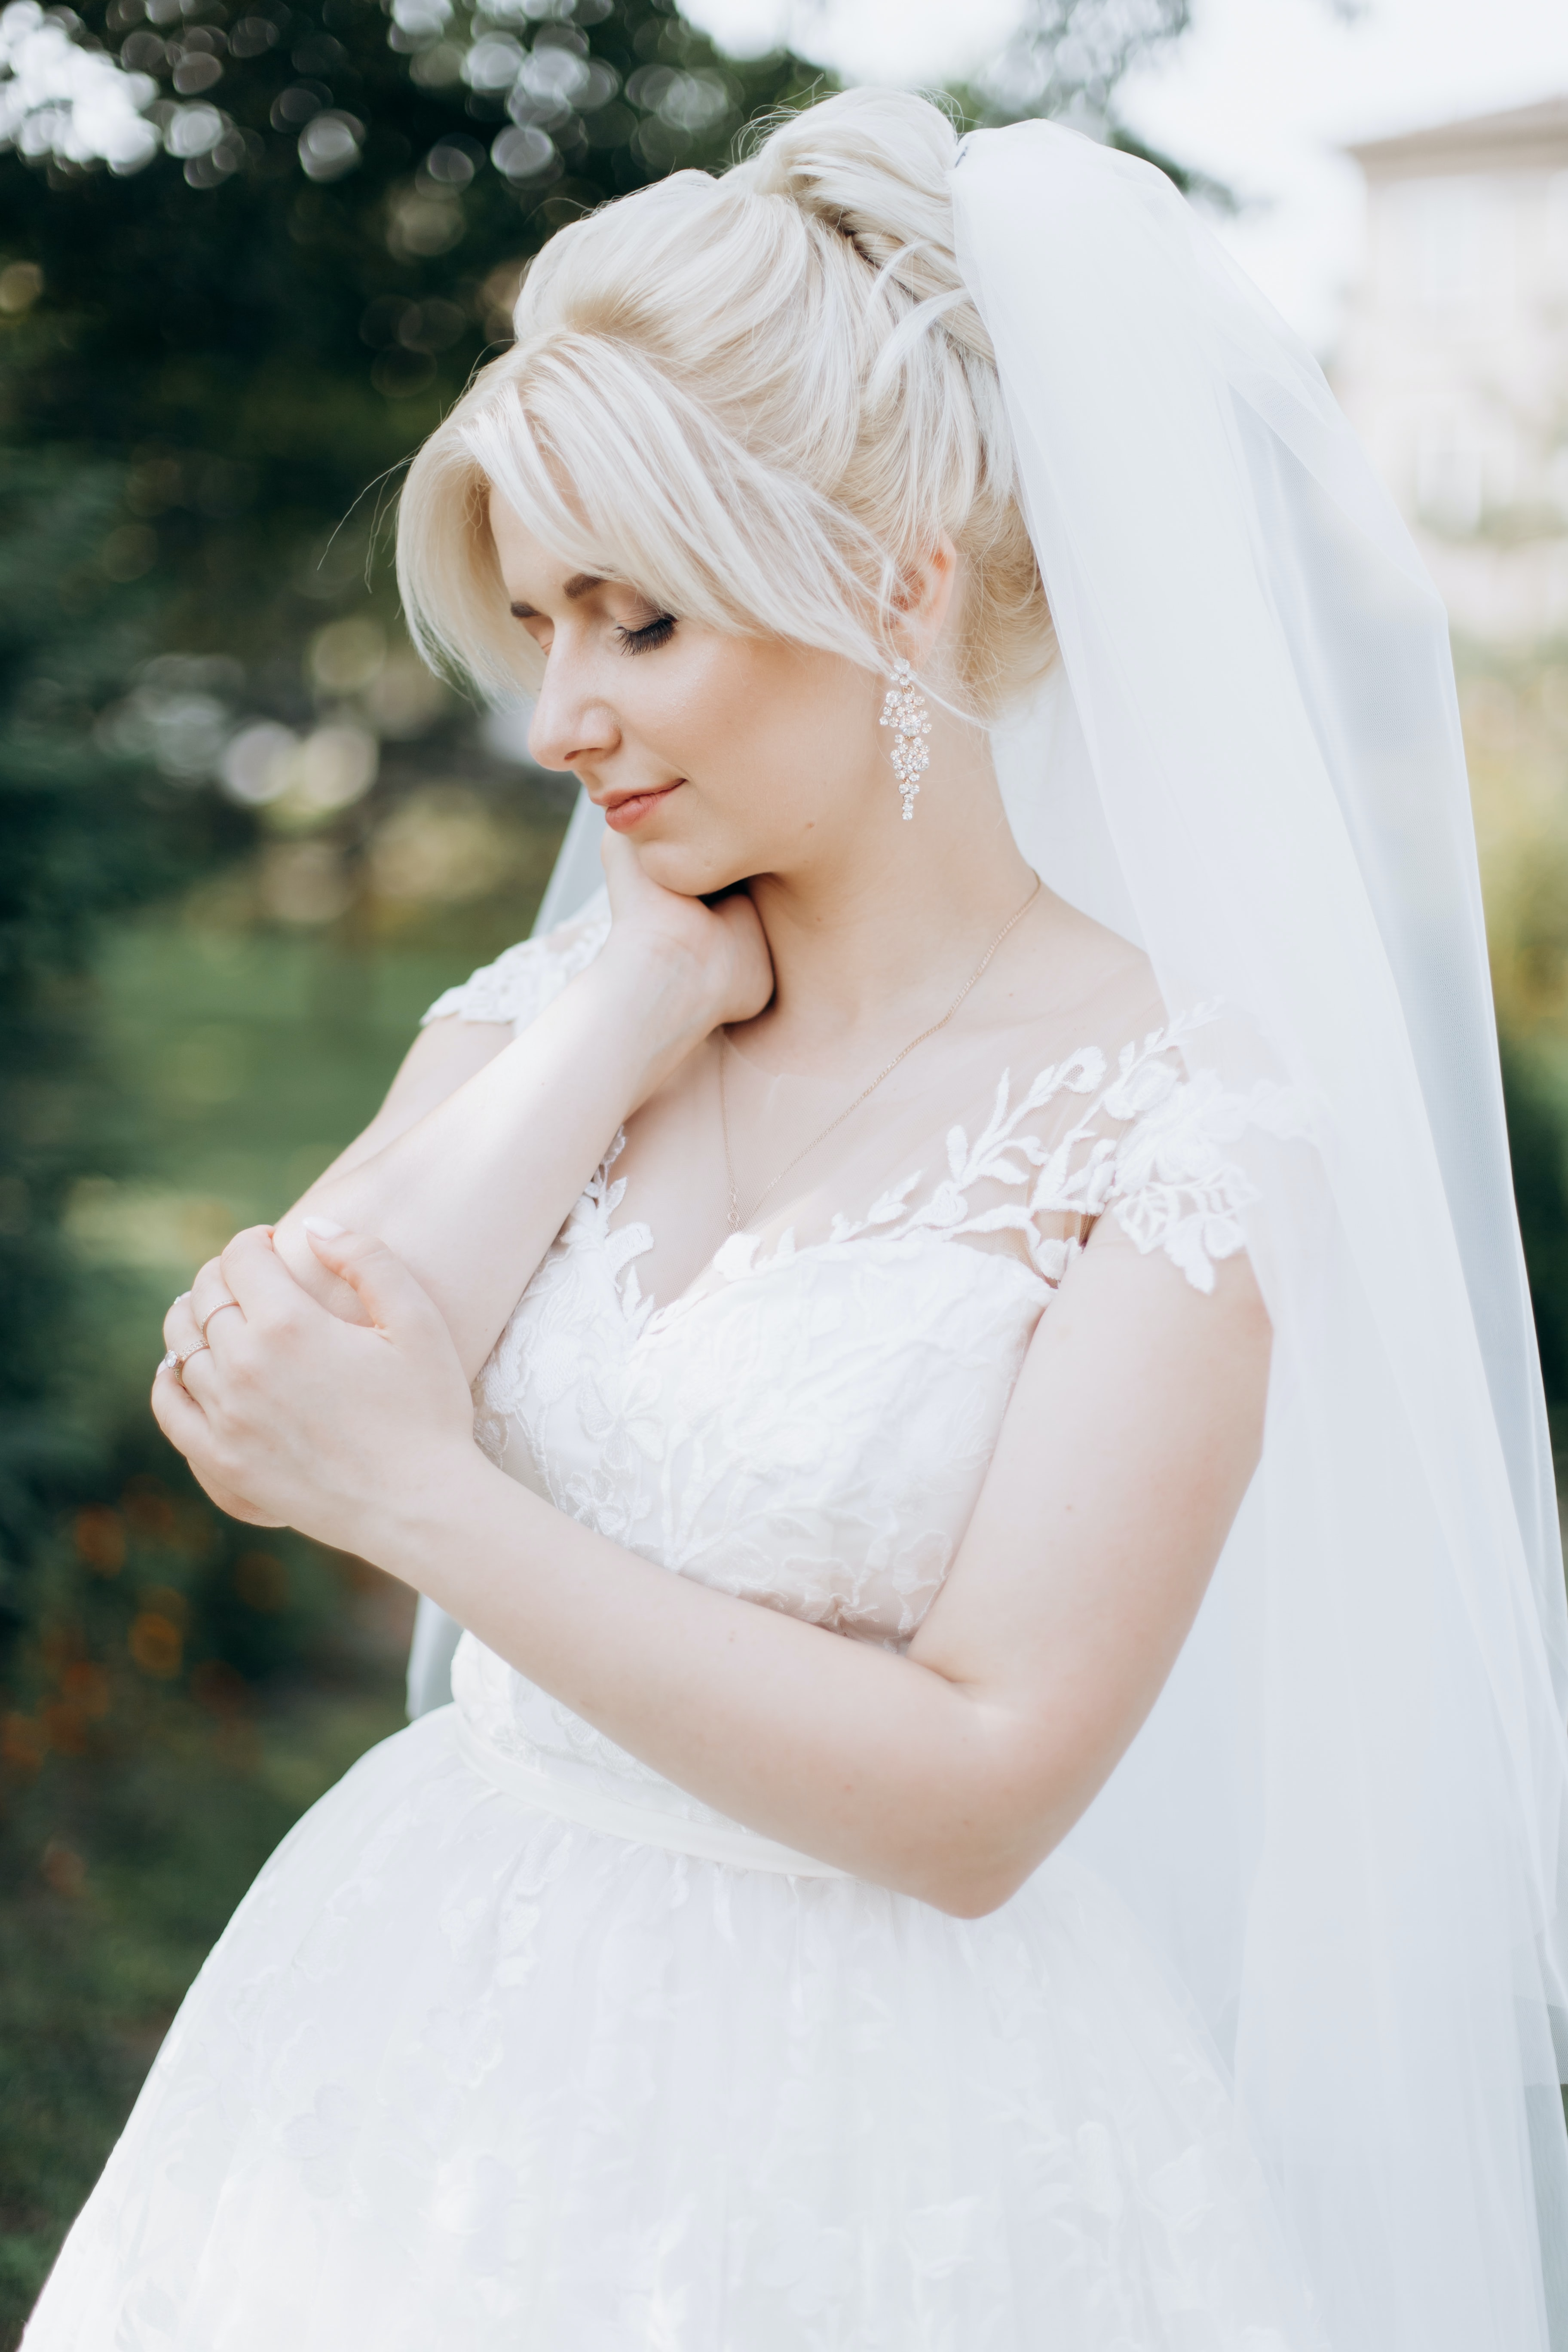 woman in white wedding dress standing at daytime